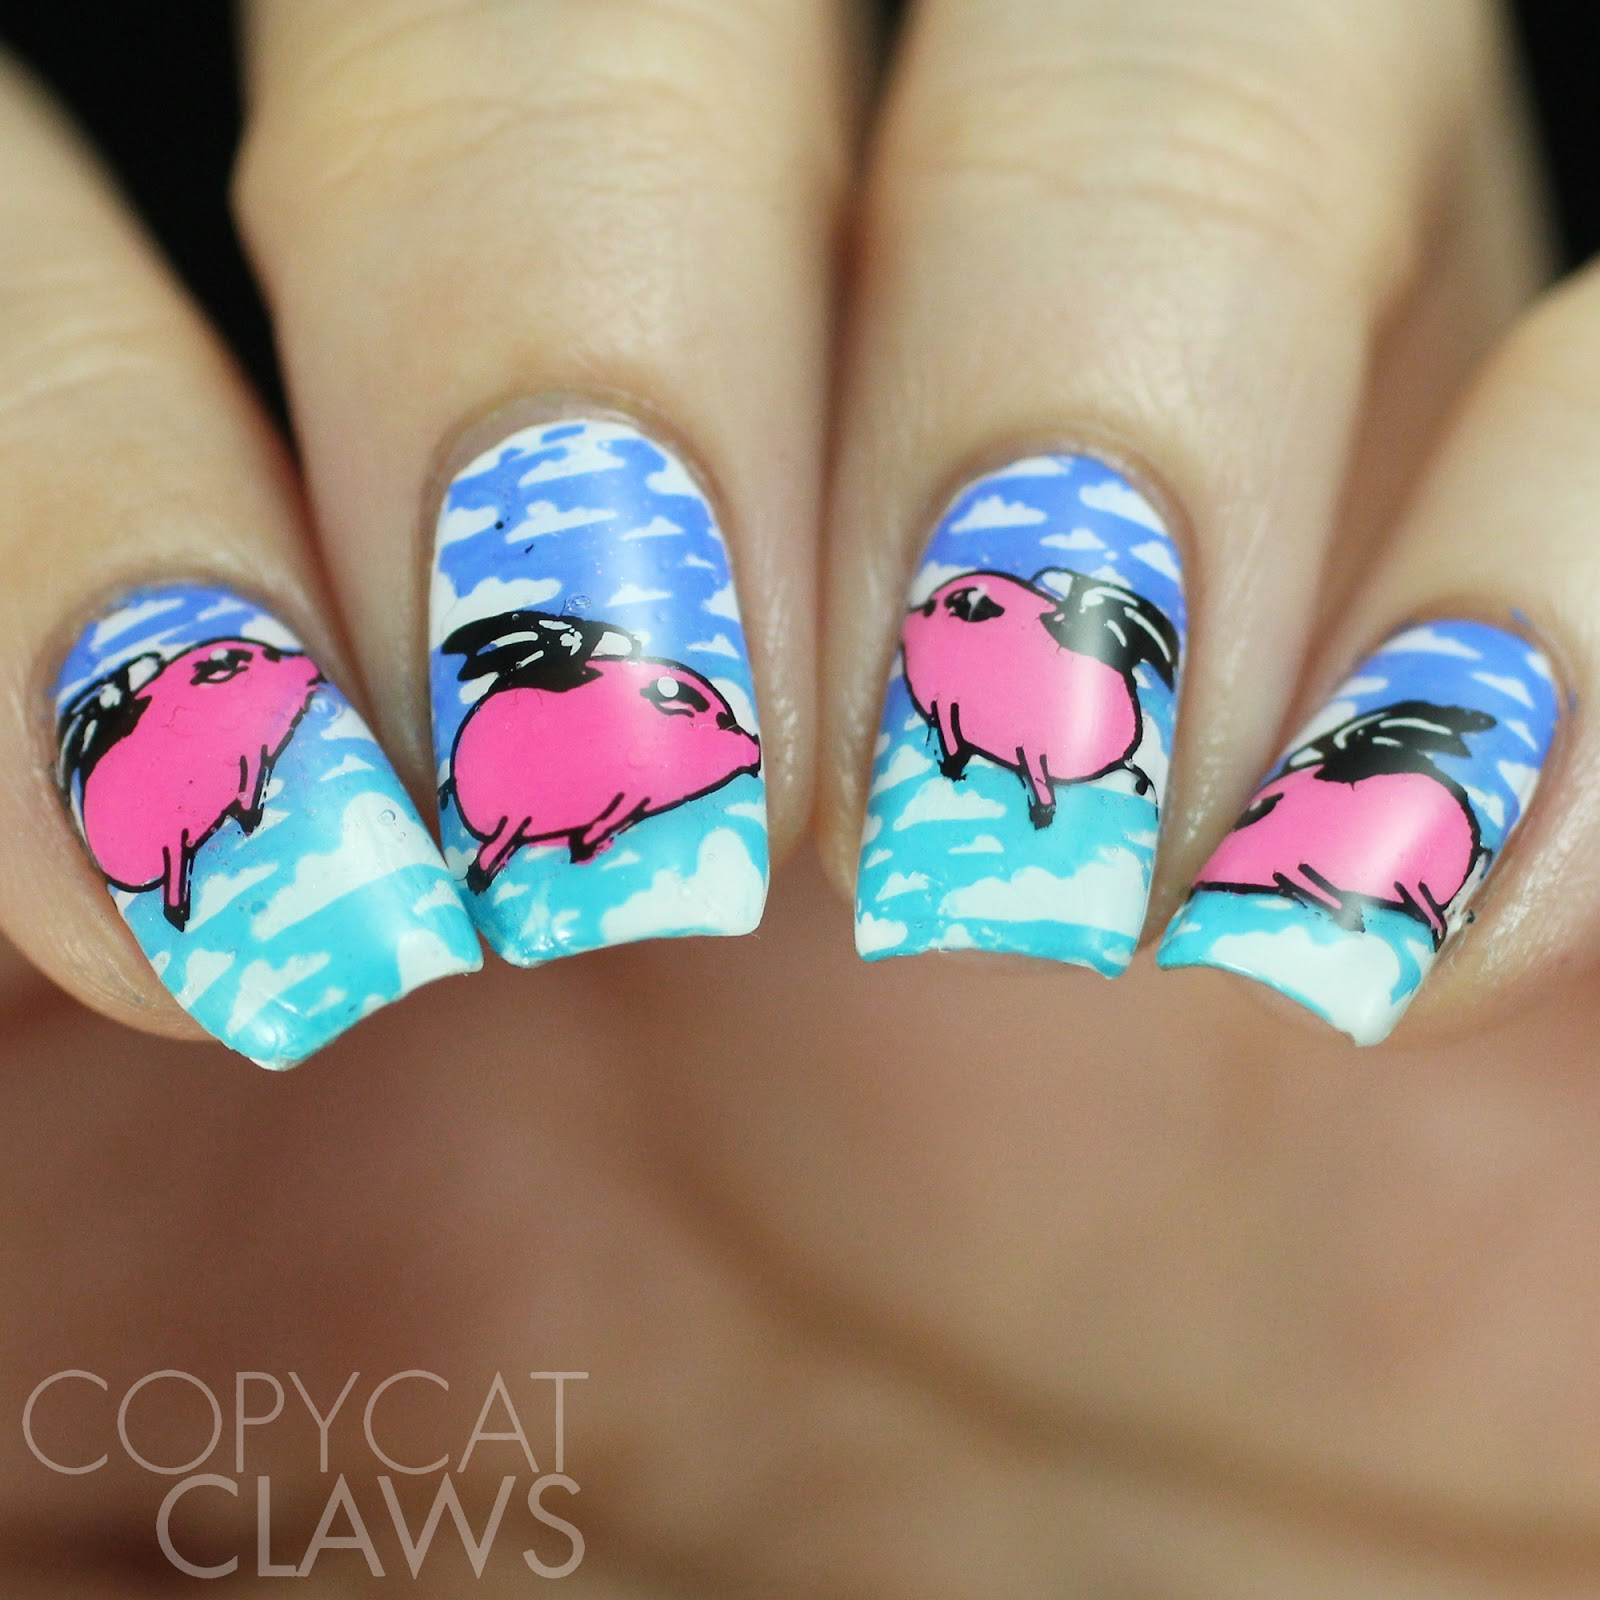 Pig Nail Art: Copycat Claws: The Digit-al Dozen Does Mythical Creatures